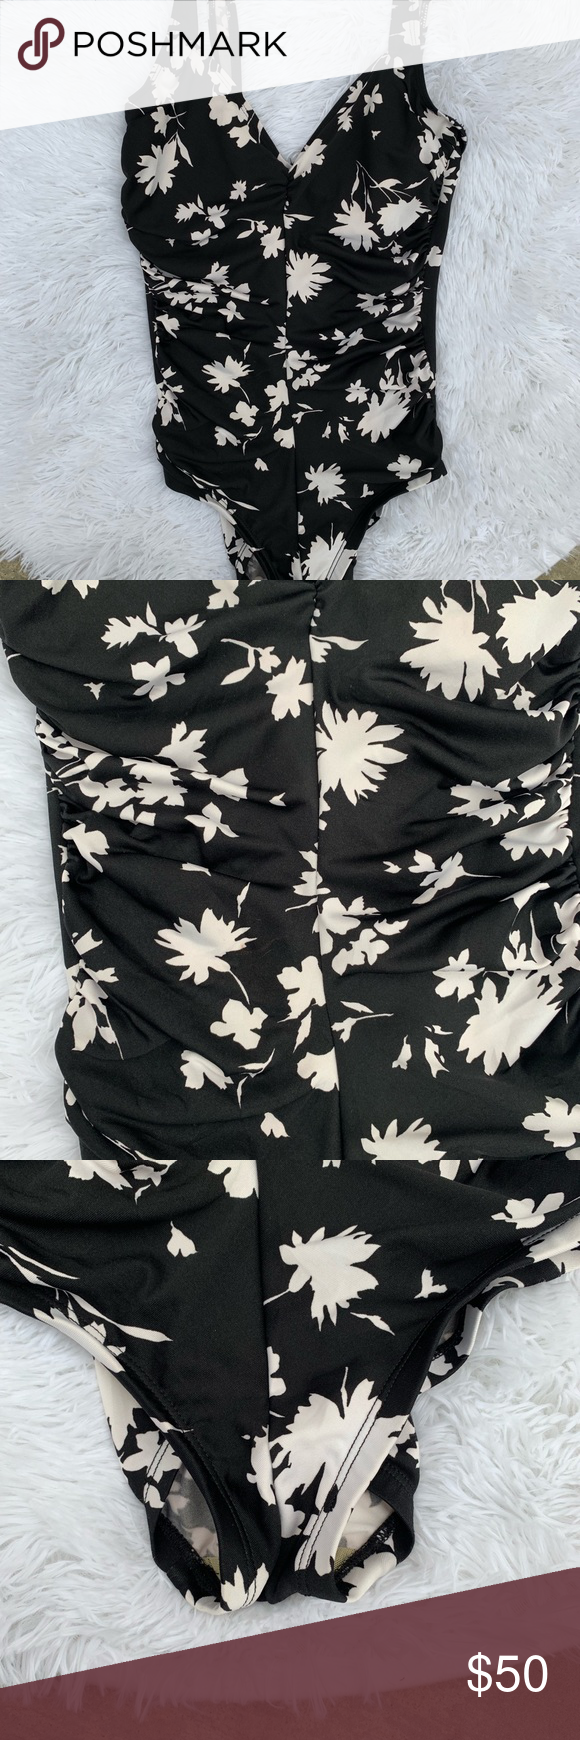 3e1f5fccee6 Vintage Gabar Ruched Floral One Piece Swimsuit Beautiful black one piece  with white flower print. Ruching down the middle, cups are lined.